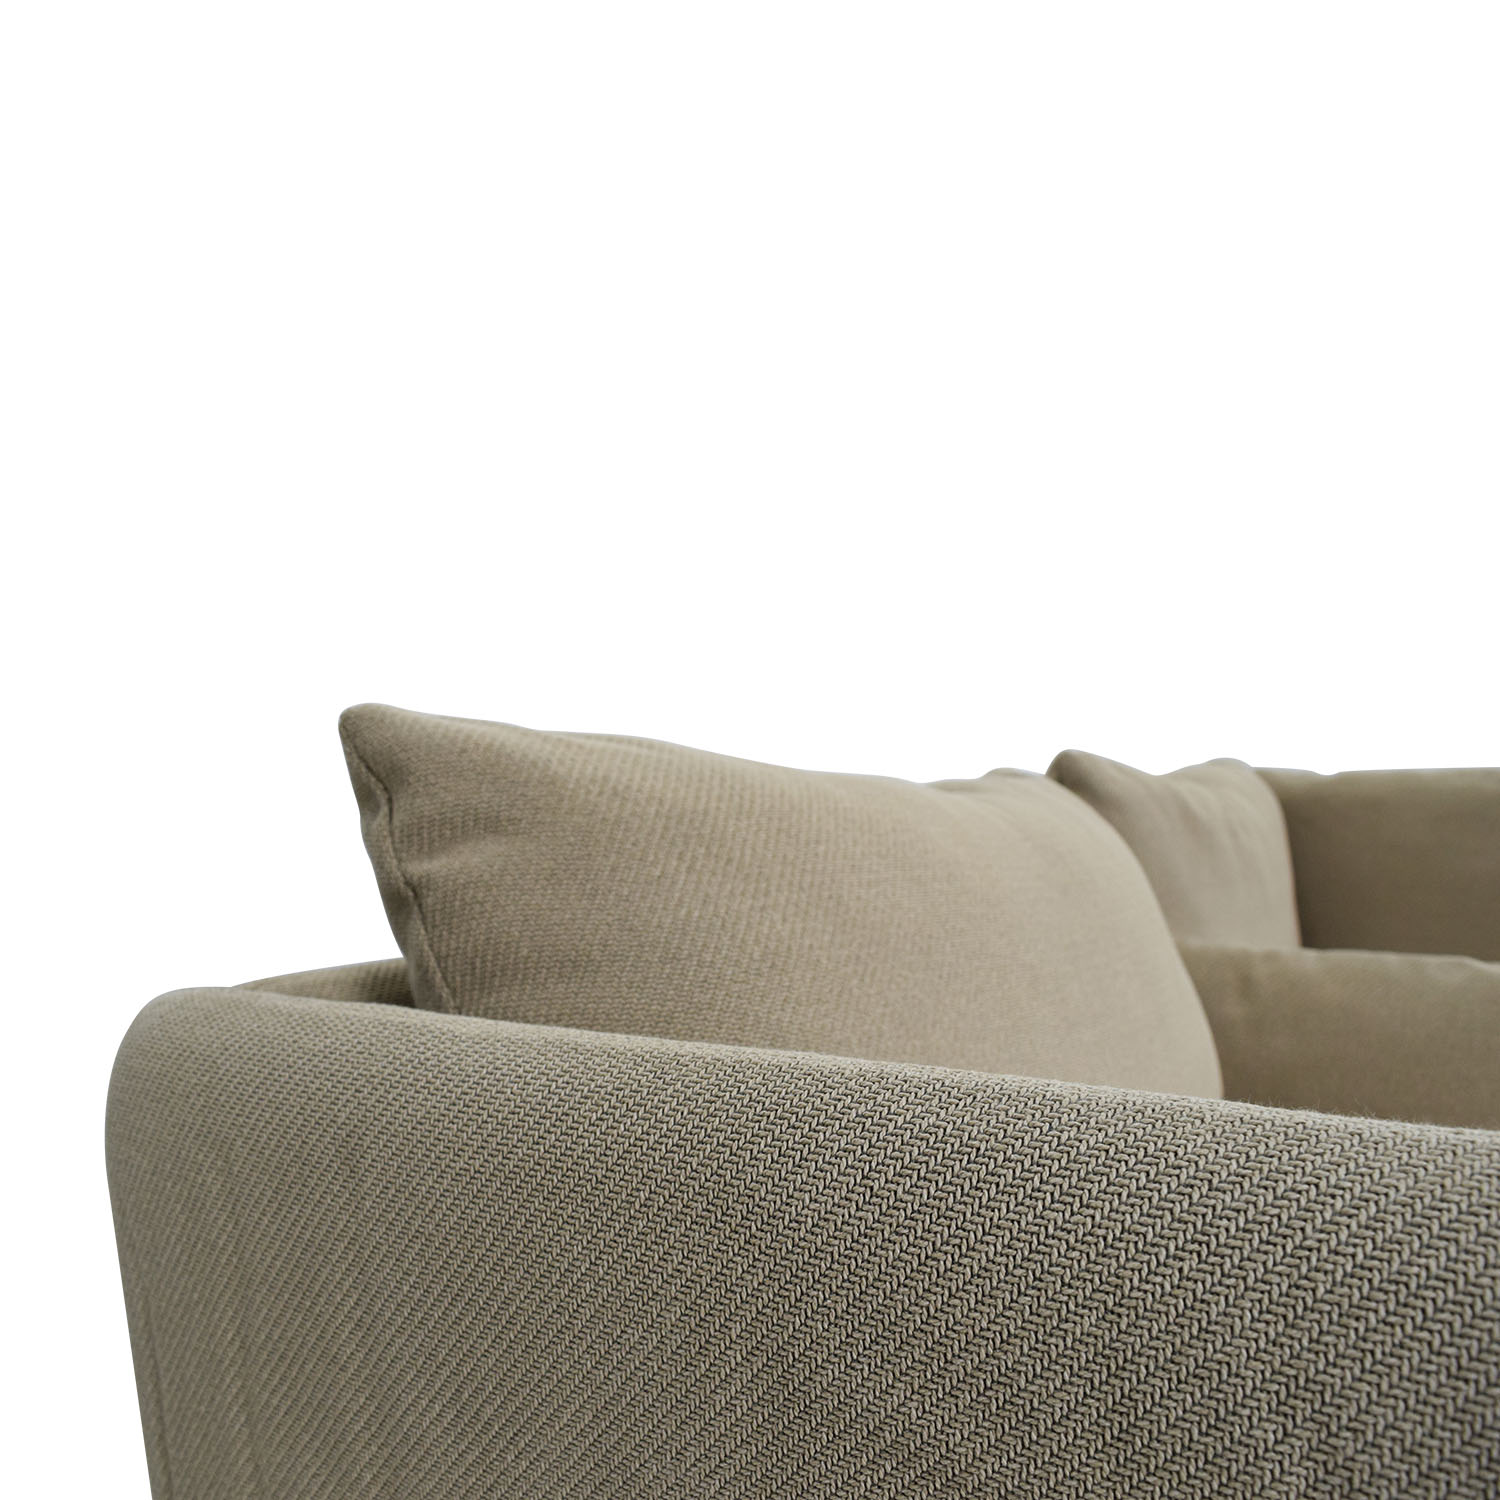 Buying A Second Hand Sofa 50 Off Ikea Soderhamn Sectional Sofa Sofas